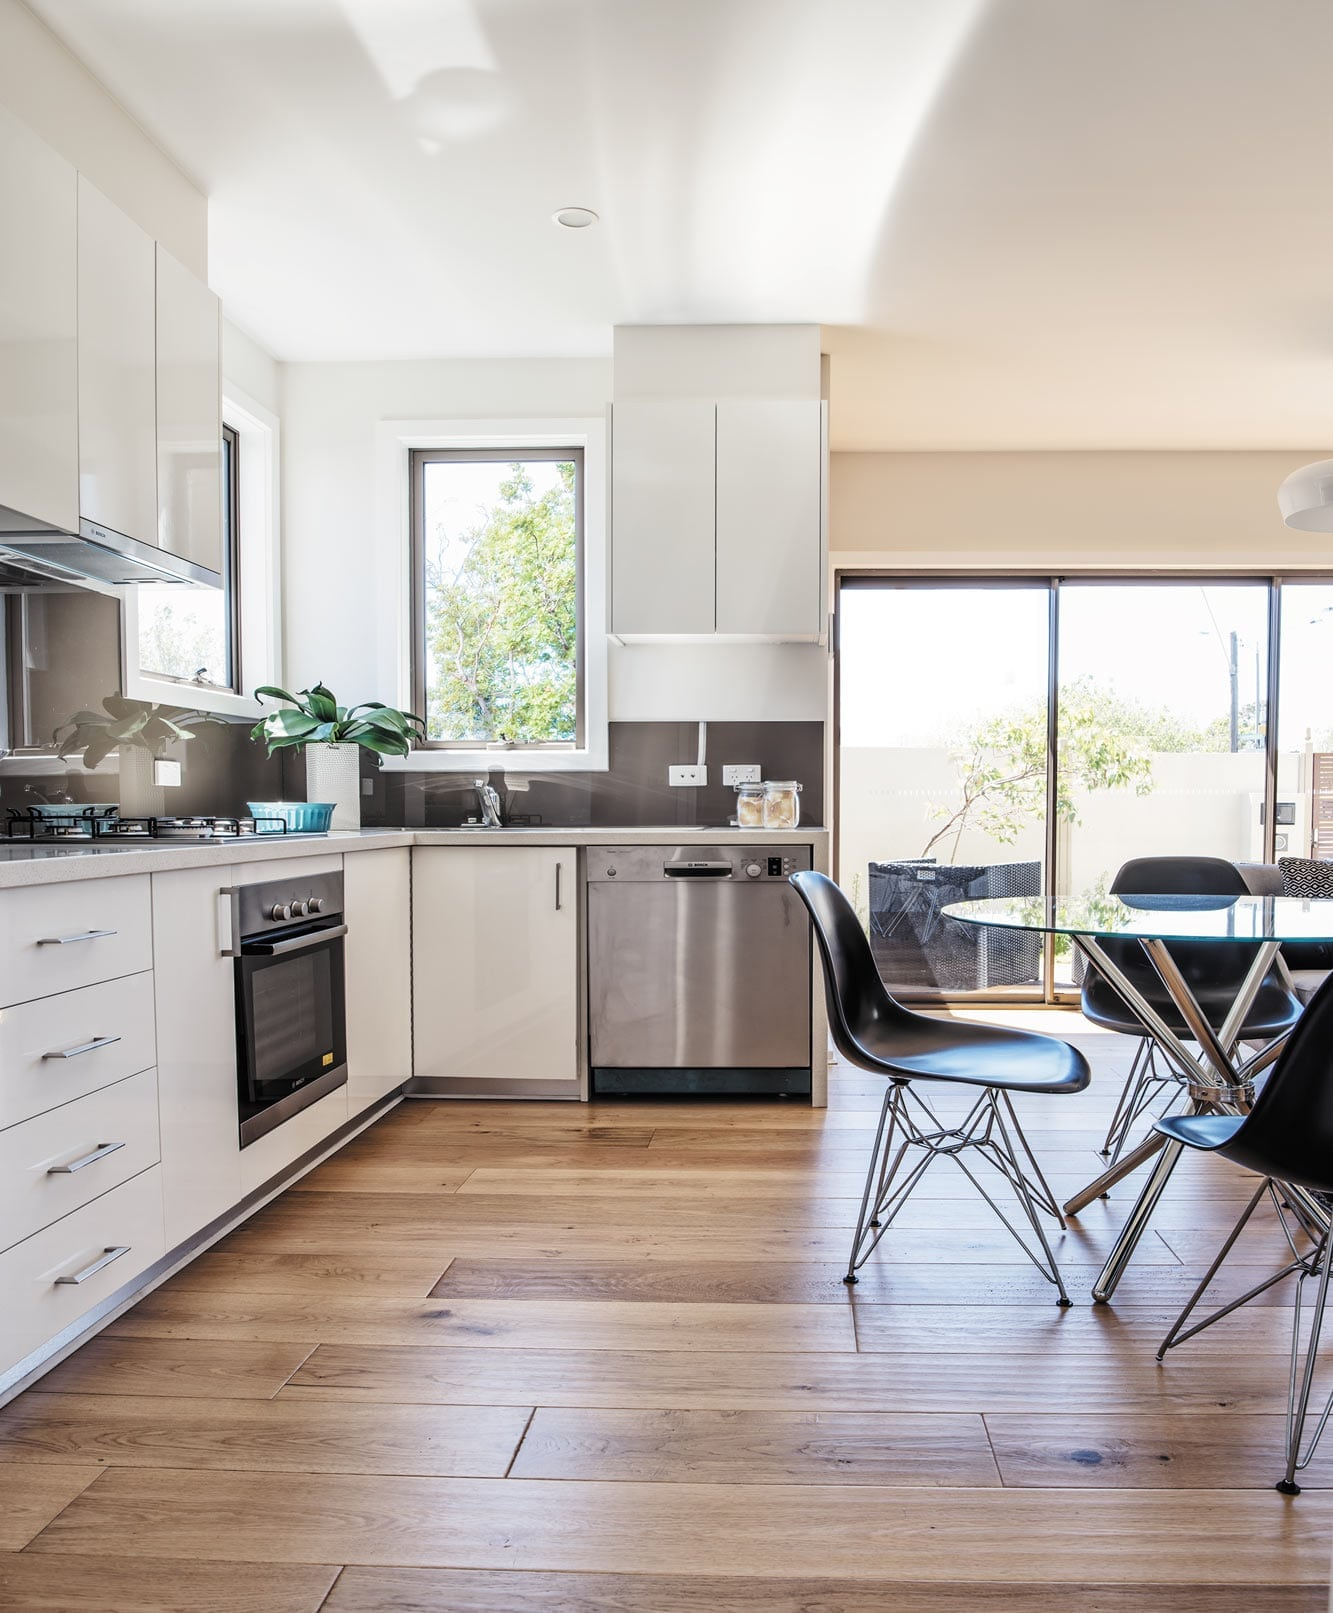 The Return in Popularity of Granny Flats